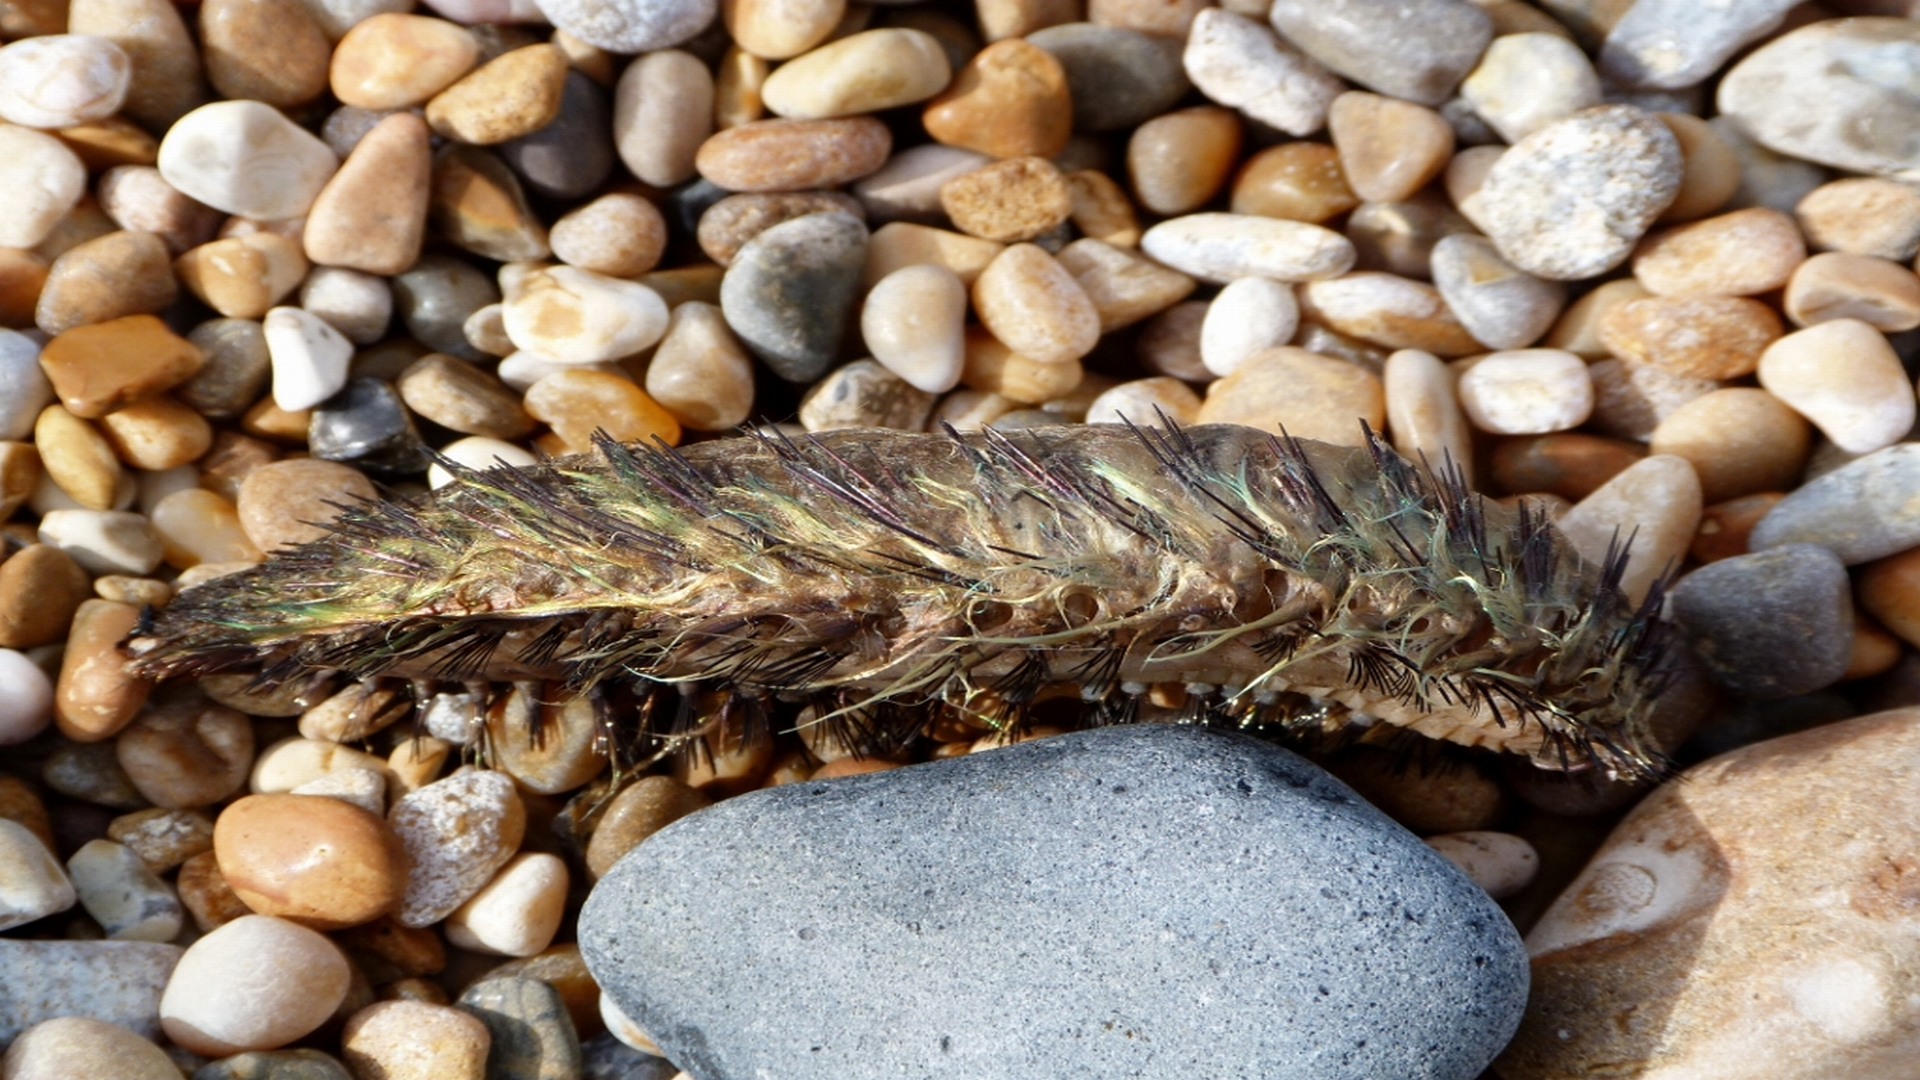 Rare sea creature washes up on Dorset beach